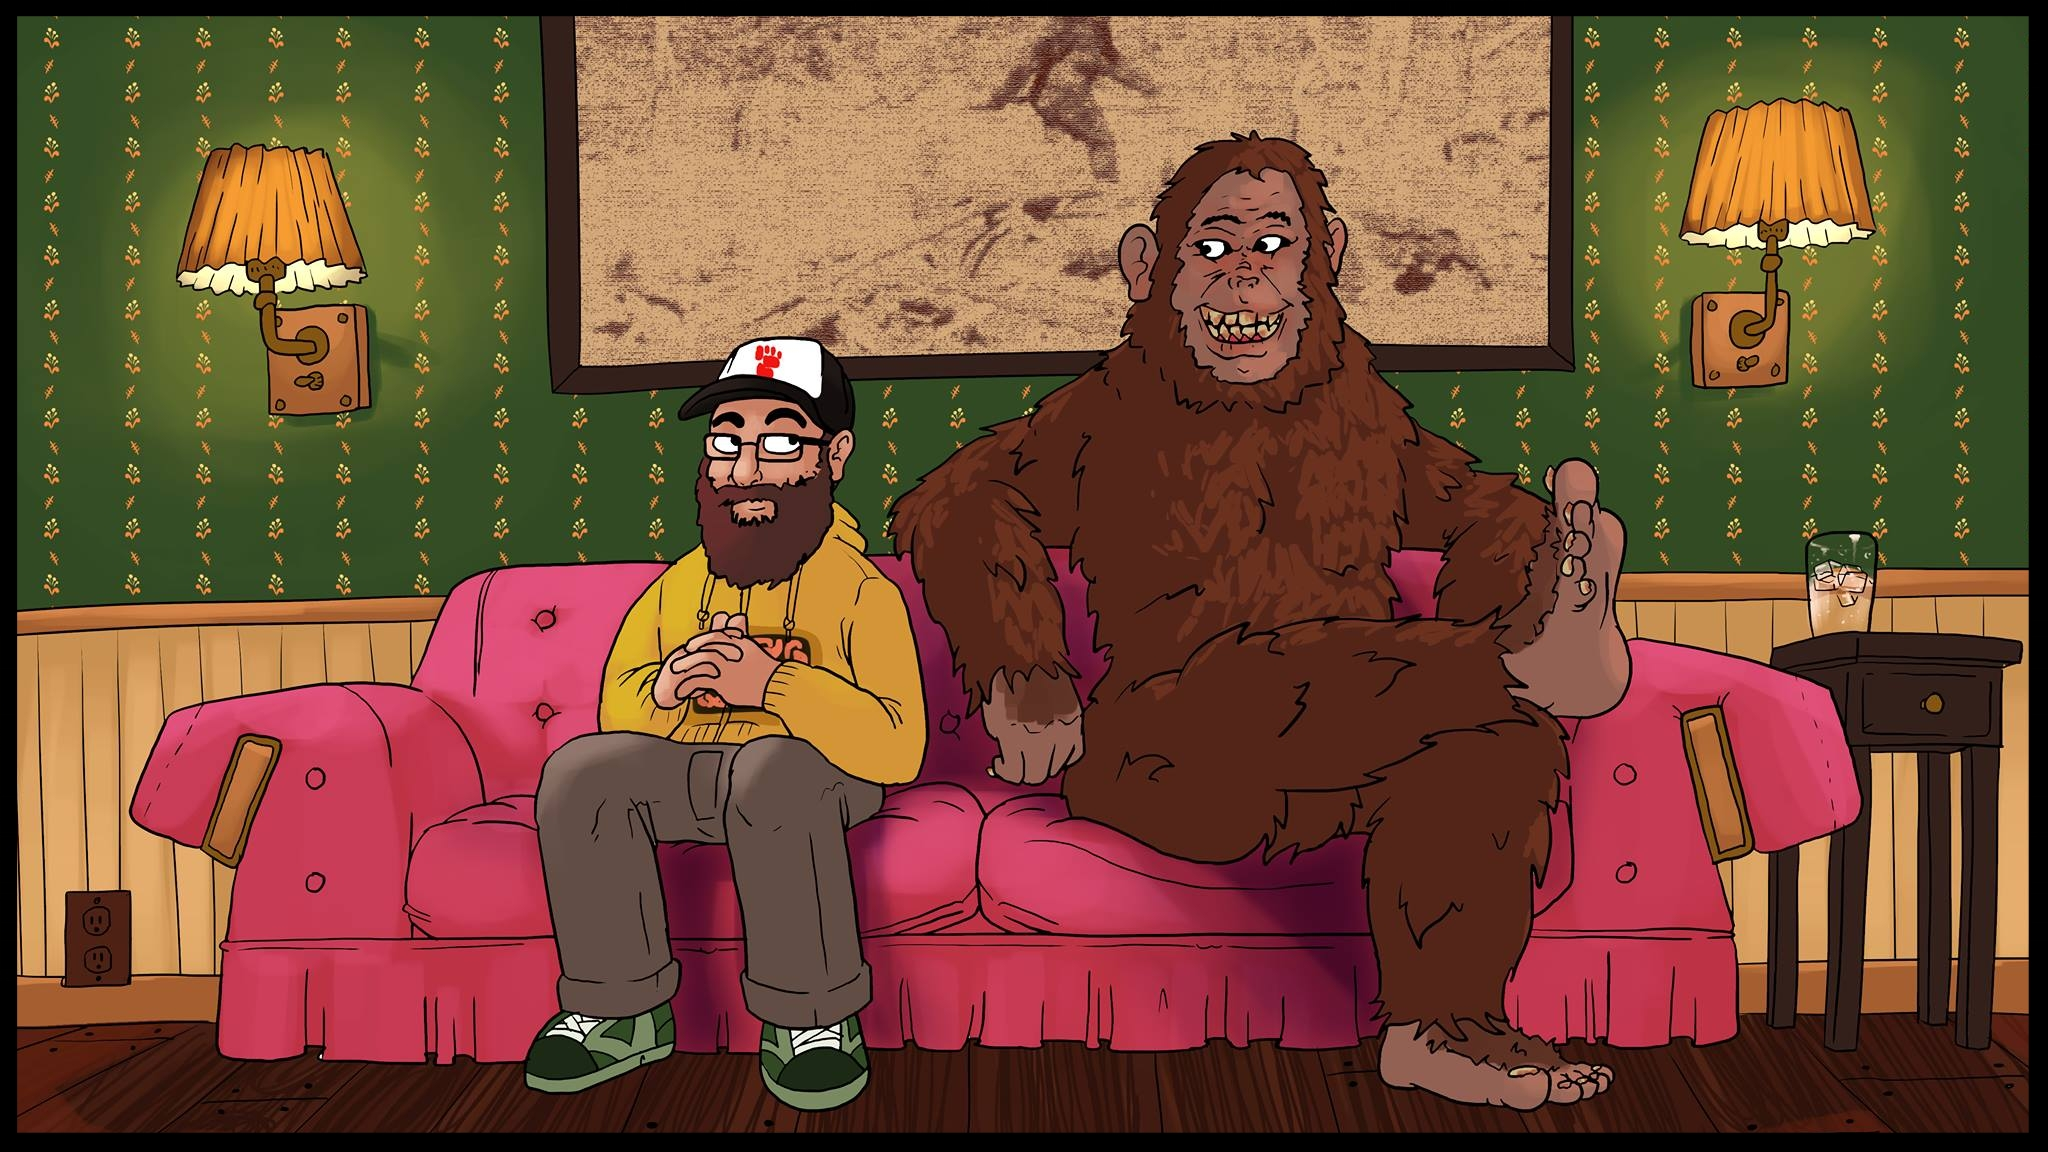 Owen and Bigfoot on the couch